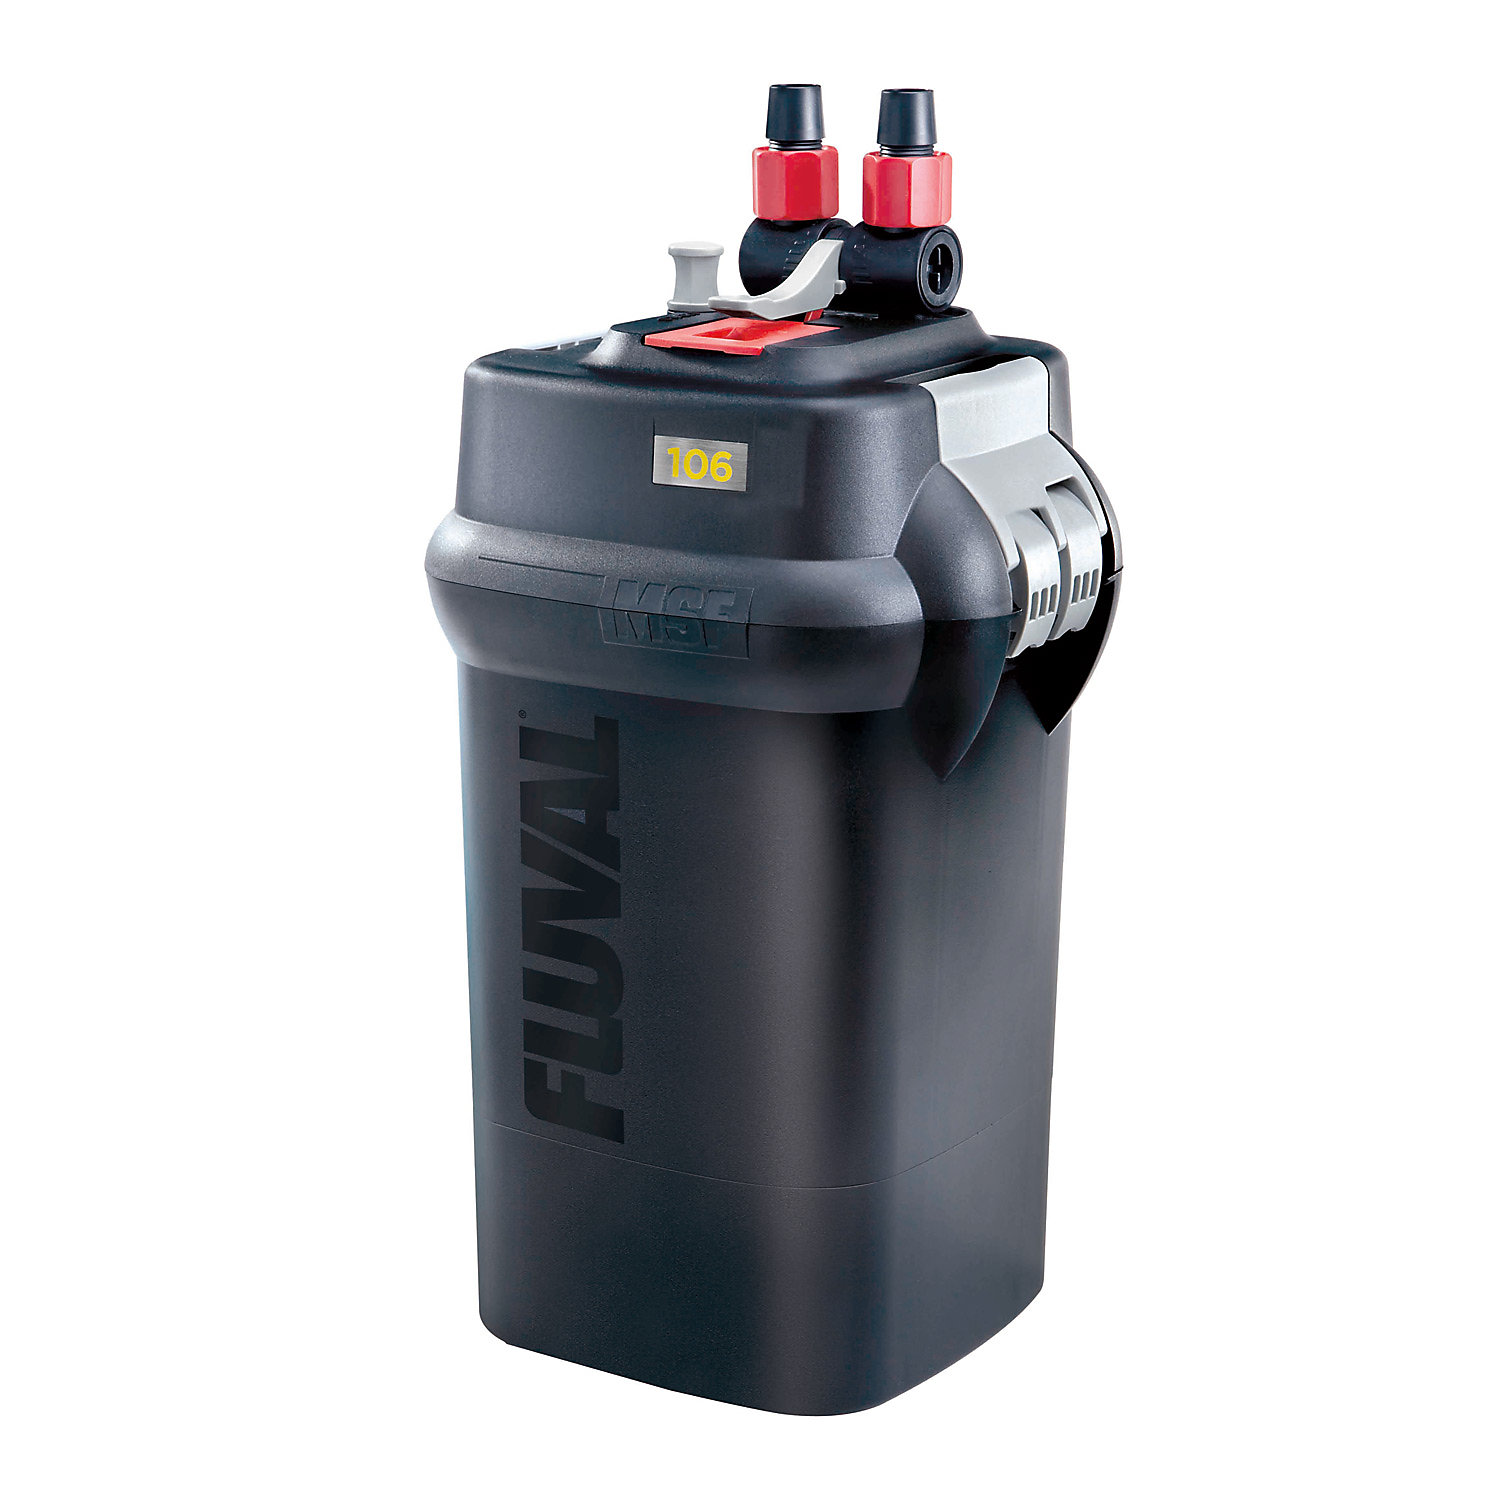 Upc 015561102025 fluval 106 external filter for Petco fish filters